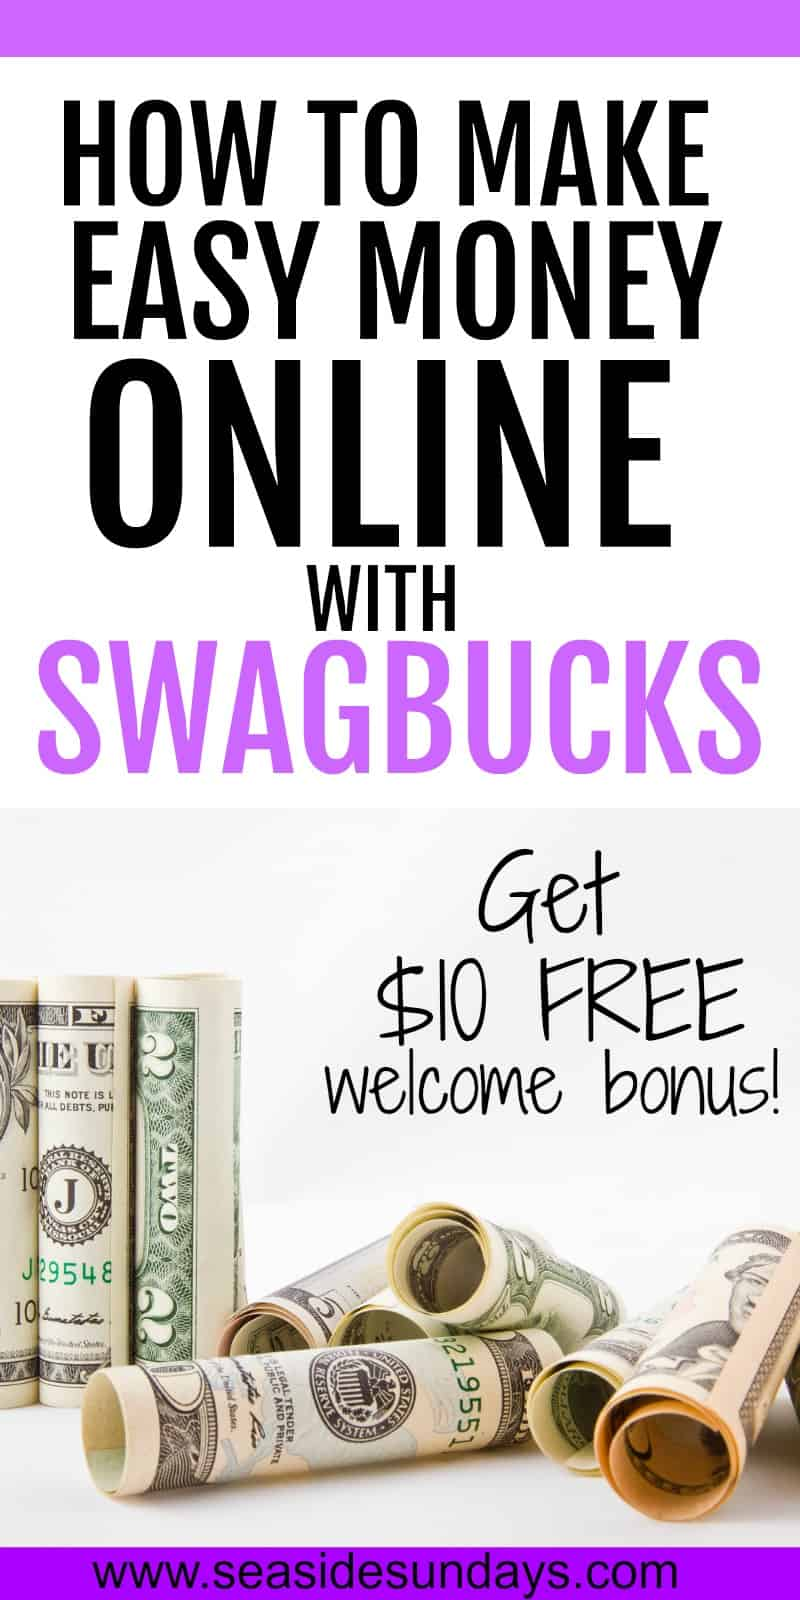 How to Make Money Easily Online With Swagbucks